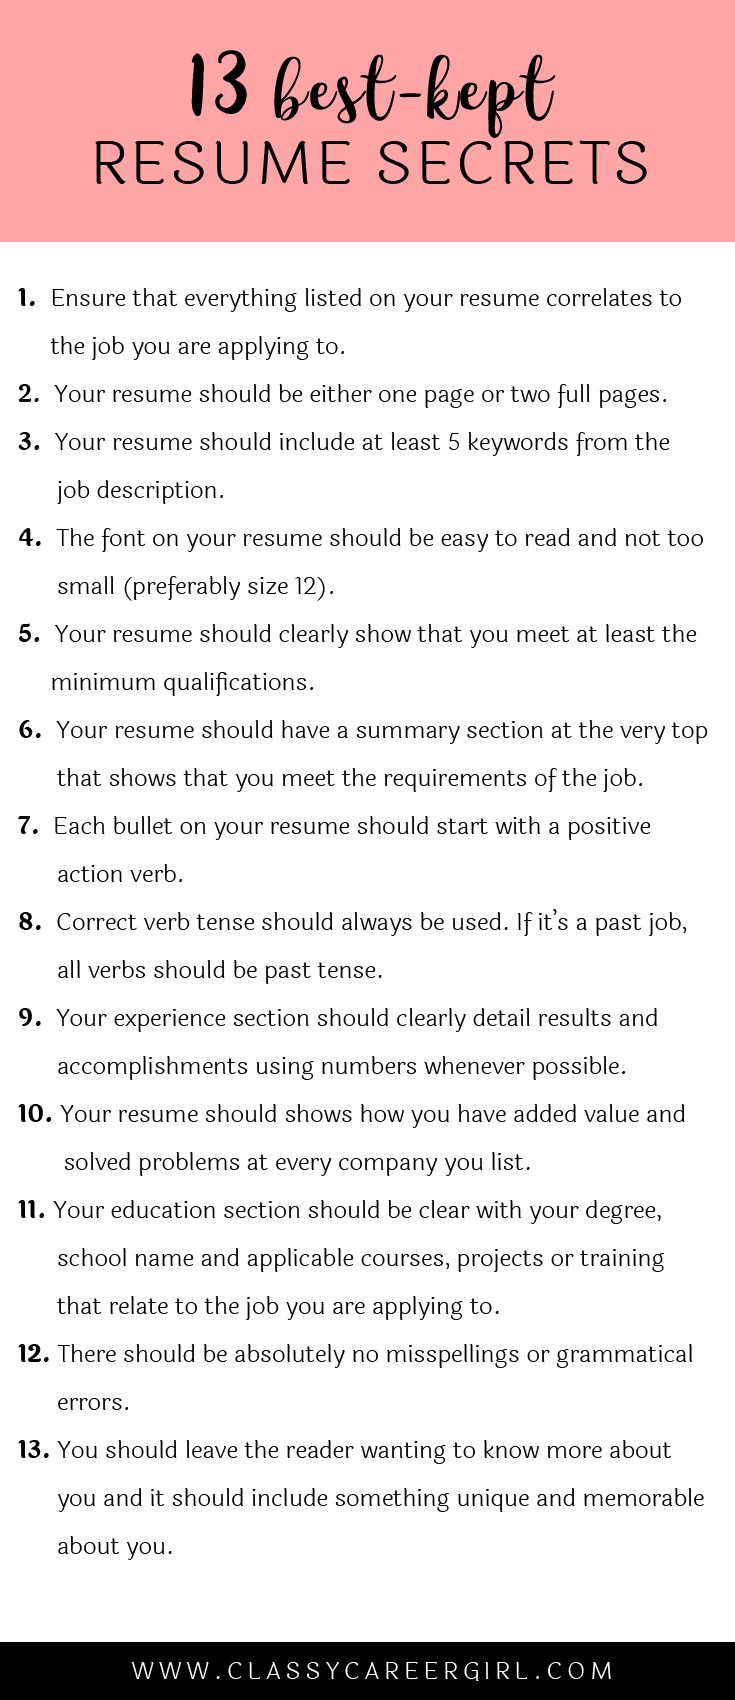 Opposenewapstandardsus  Surprising  Ideas About Resume On Pinterest  Cv Format Resume Cv And  With Lovable Some Hiring Managers Will Toss Your Resume Out If You Dont Know These  With Beauteous Product Manager Resume Examples Also Resume For Welder In Addition Executive Resume Example And Illustrator Resume Template As Well As Bootstrap Resume Template Additionally Resume Submission From Pinterestcom With Opposenewapstandardsus  Lovable  Ideas About Resume On Pinterest  Cv Format Resume Cv And  With Beauteous Some Hiring Managers Will Toss Your Resume Out If You Dont Know These  And Surprising Product Manager Resume Examples Also Resume For Welder In Addition Executive Resume Example From Pinterestcom